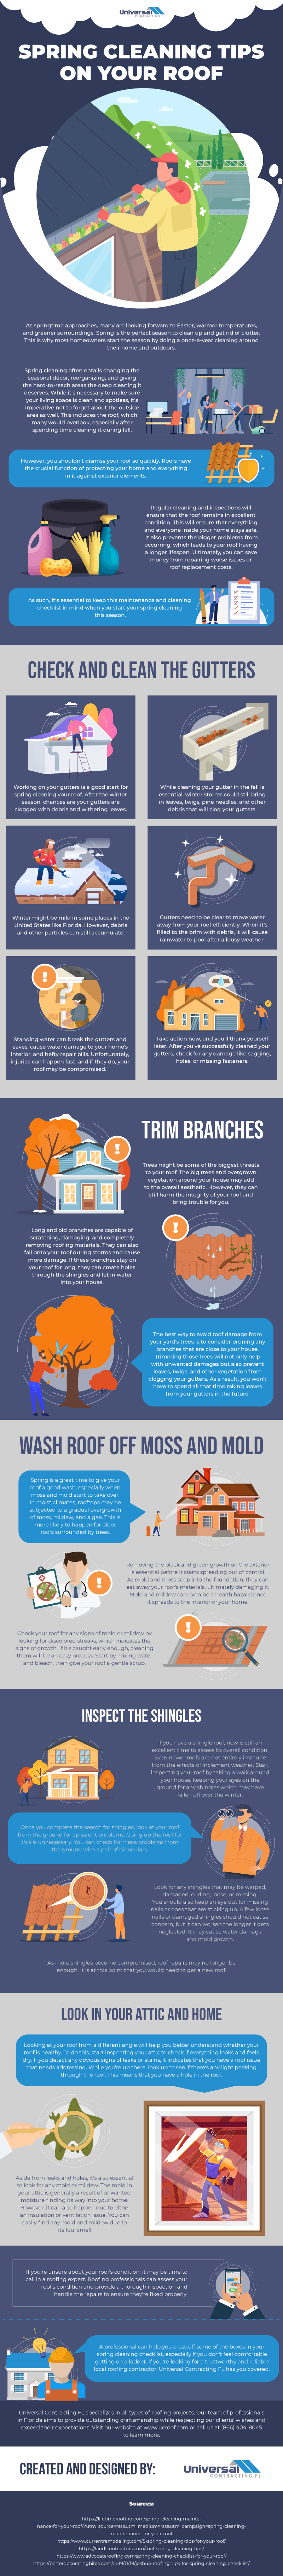 Spring Cleaning Tips for your Roof - Infographic